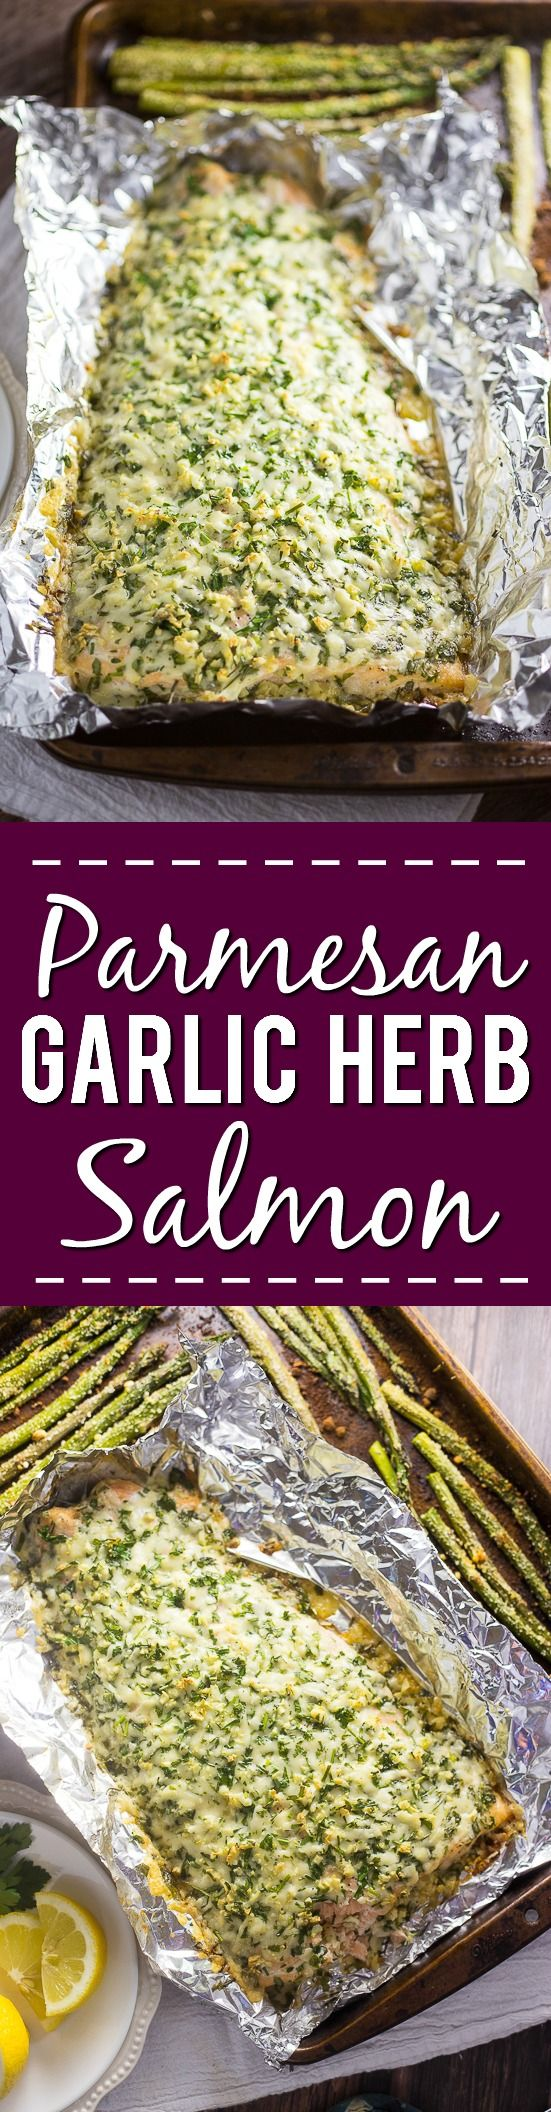 Parmesan Garlic Herb Salmon Recipe -Quick and easy family dinner recipe, but also cheesy and zestyParmesan Garlic Herb Salmon recipe uses to simple ingredients to make a delicious flavorful meal in just 30 minutes! Perfect easy fish dinner!